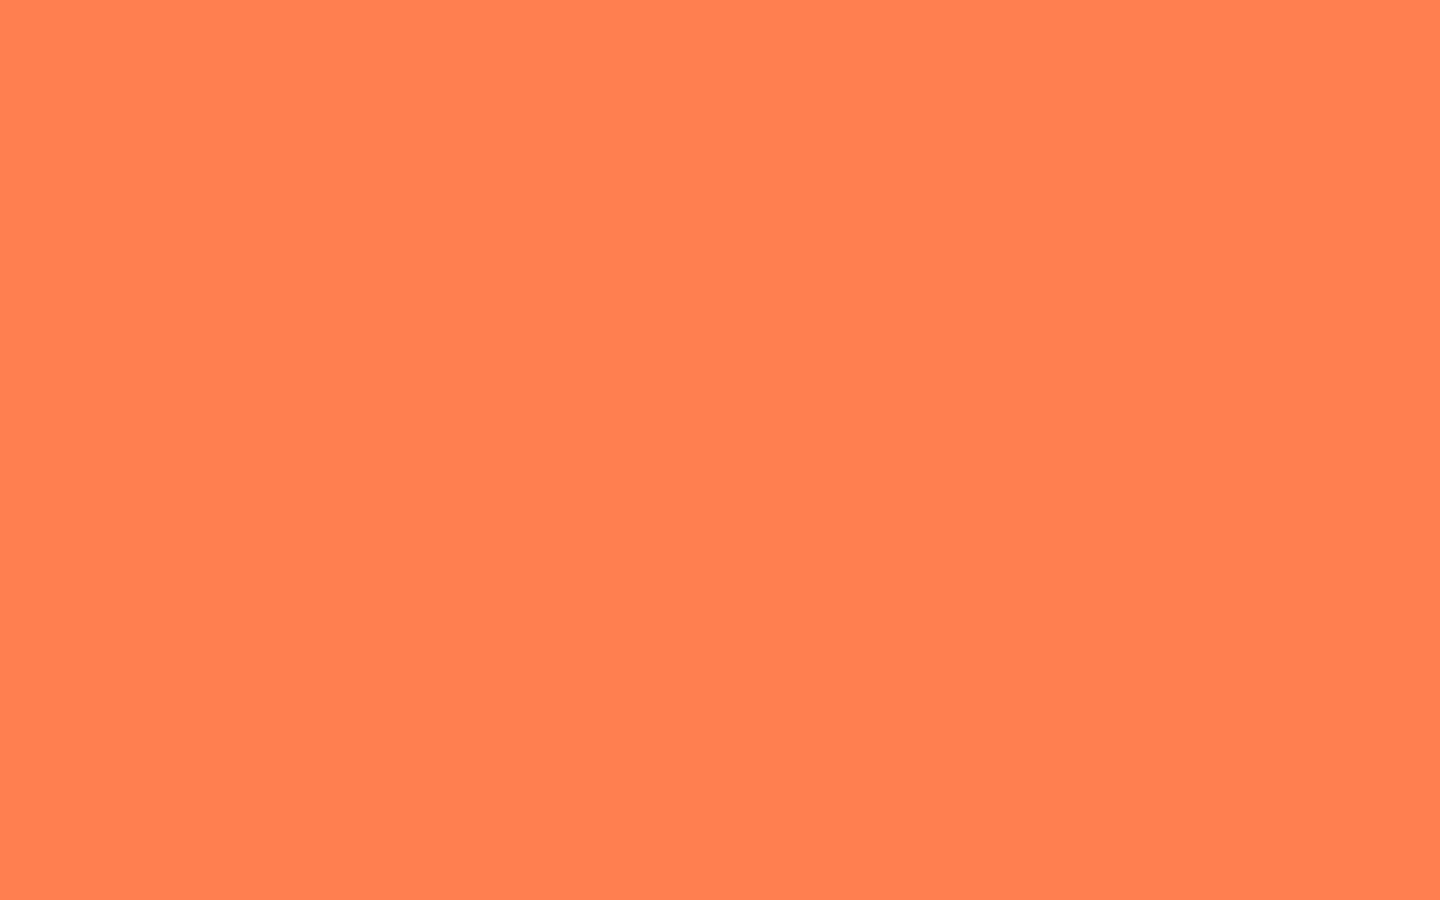 1440x900 Coral Solid Color Background